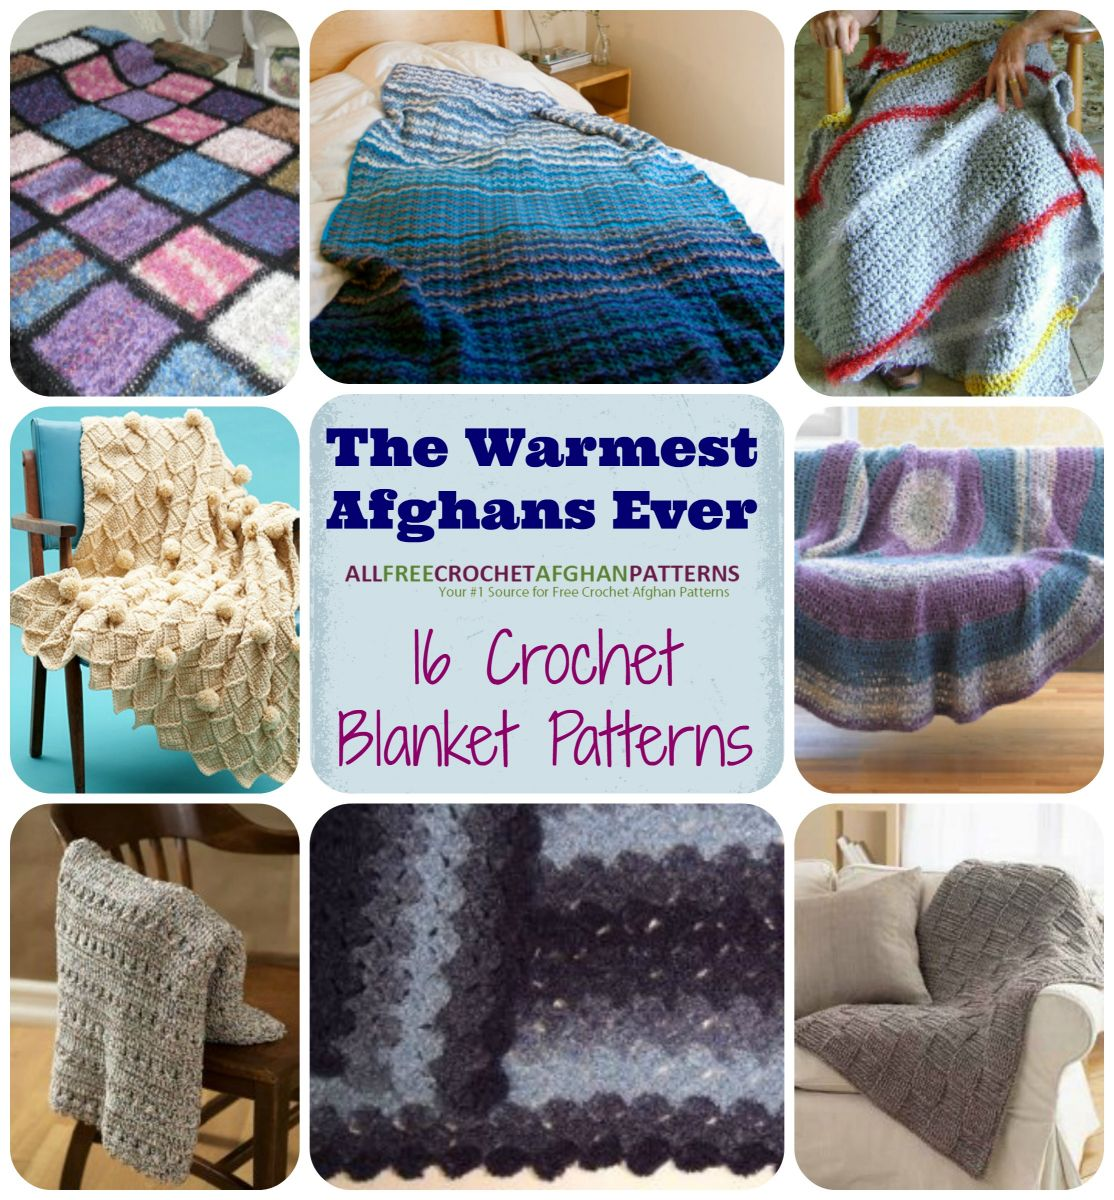 The Warmest Afghans Ever 16 Crochet Blanket Patterns